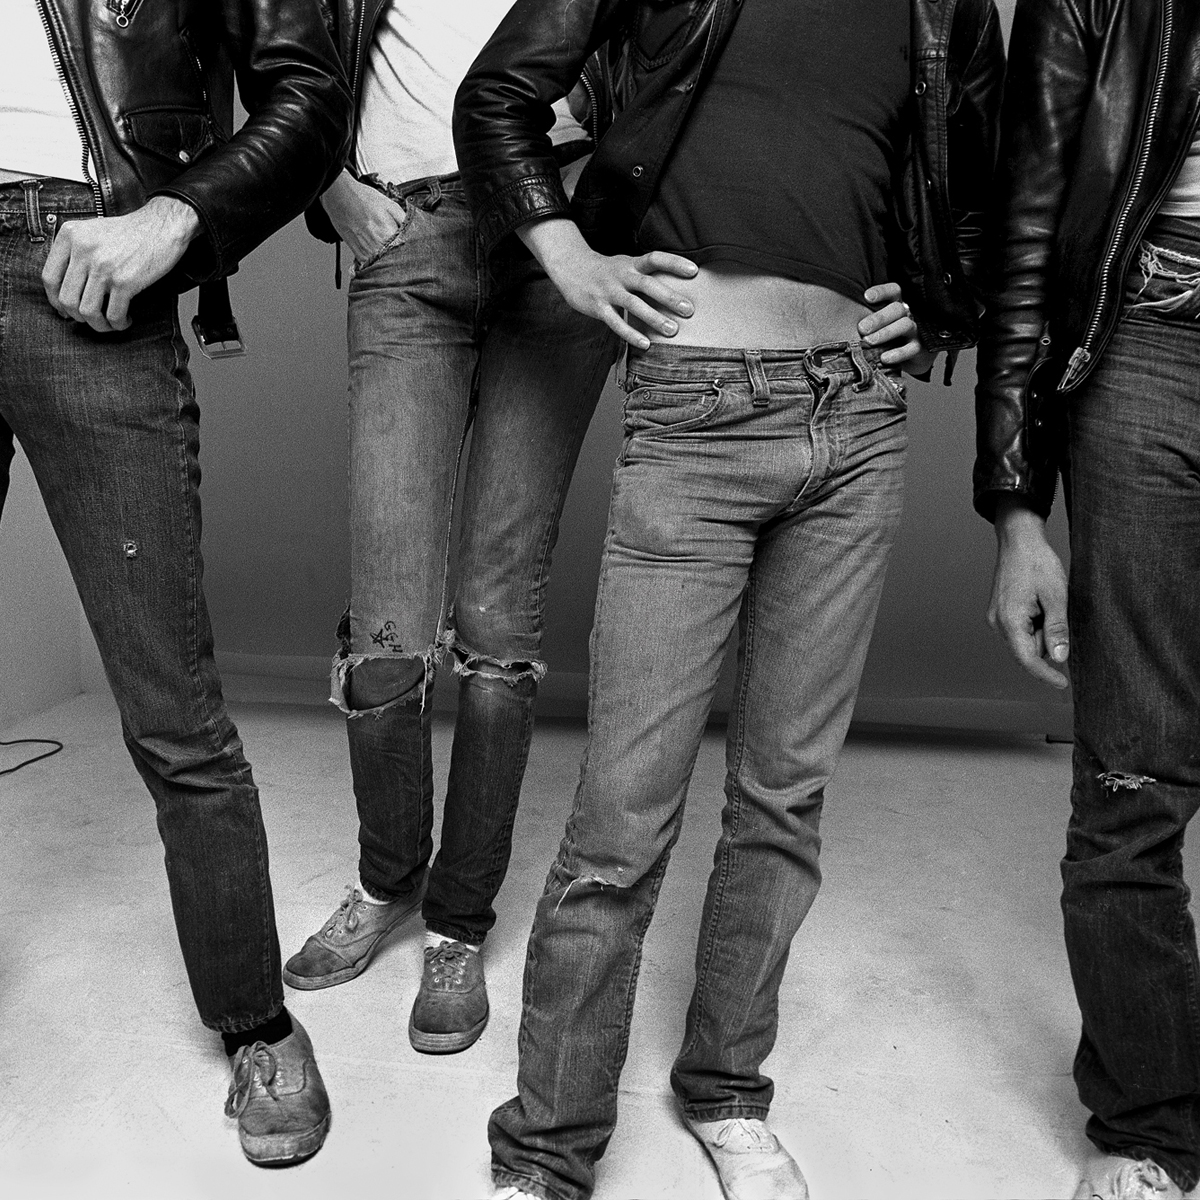 NORMAN SEEFF  THE LOOK OF SOUND 28.09.2014 – 01.03.2015